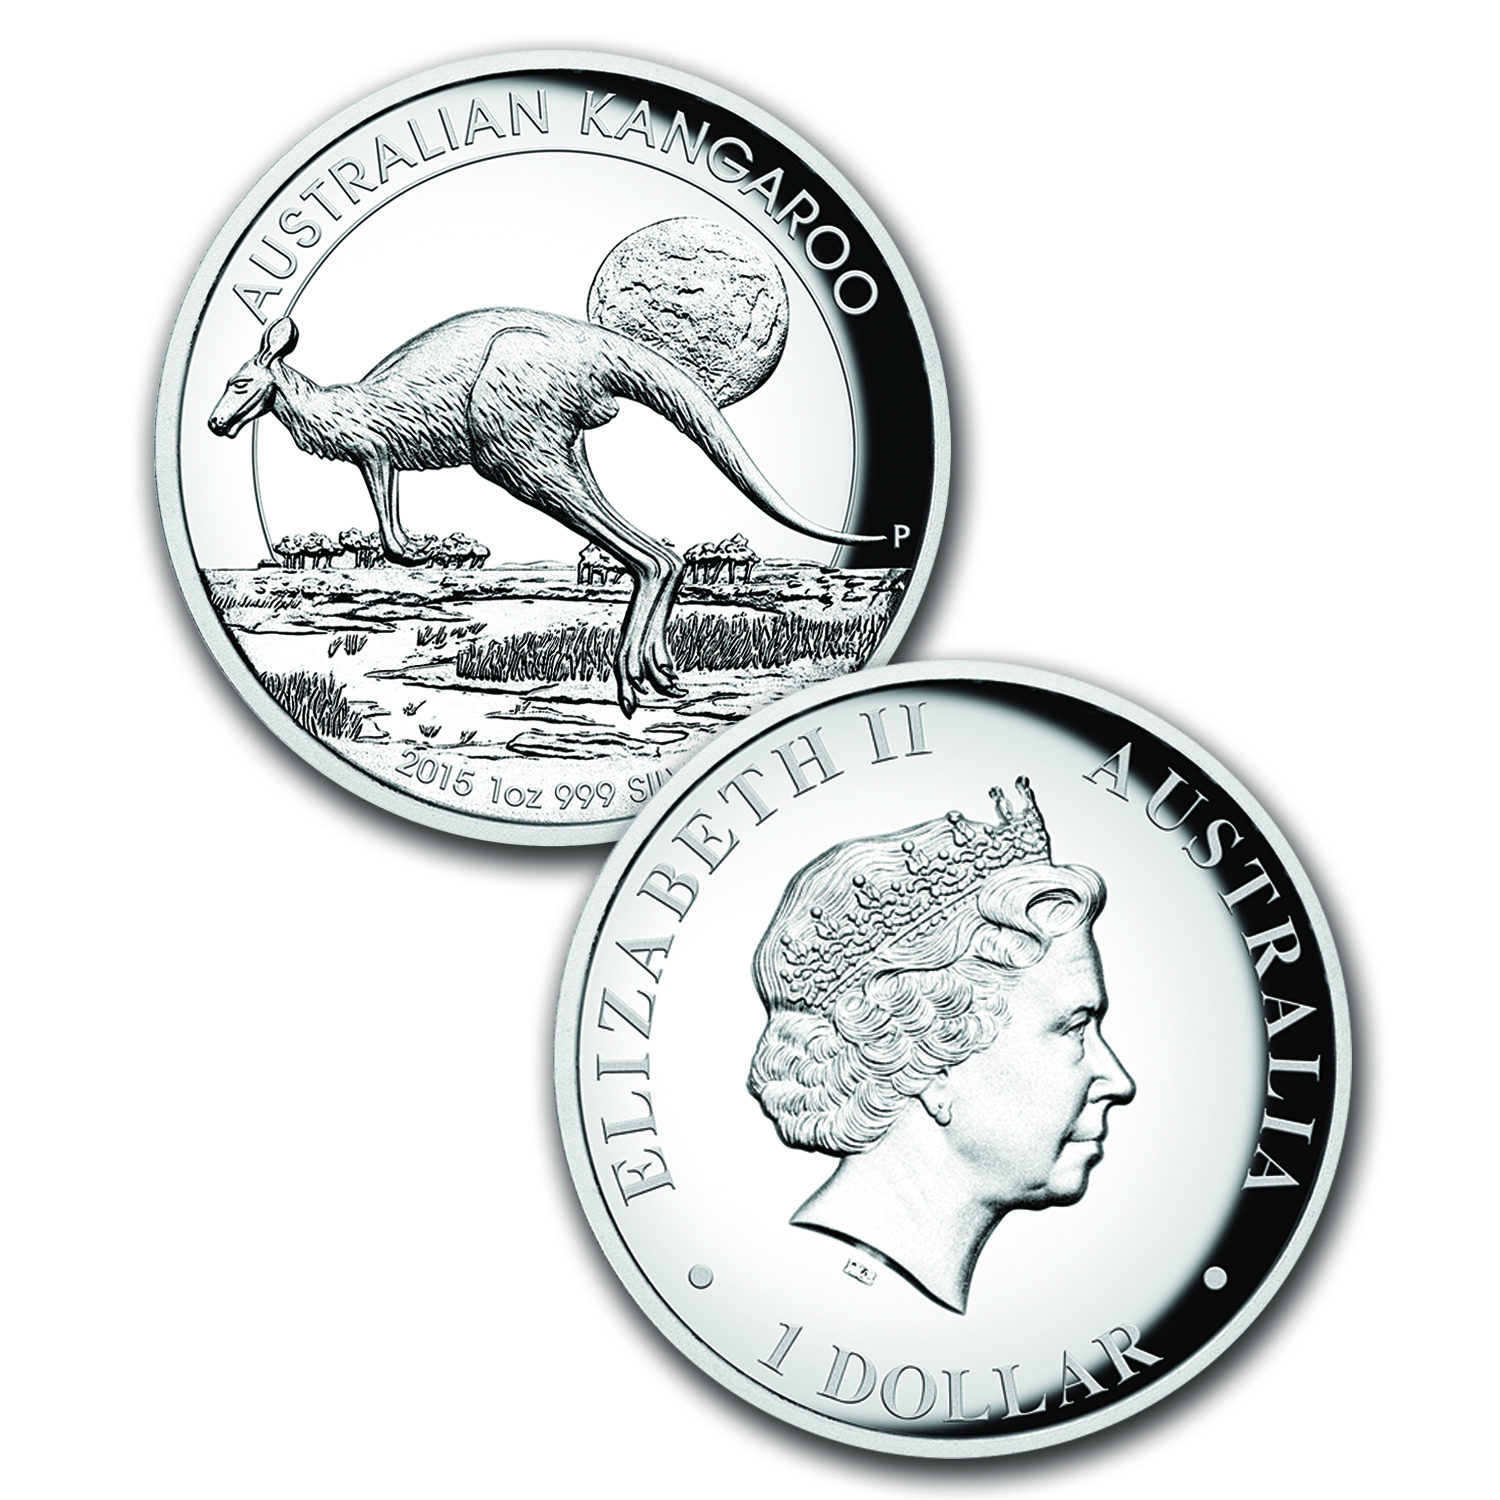 2015 Australia 3-Coin 1 oz Silver High Relief Proof Set